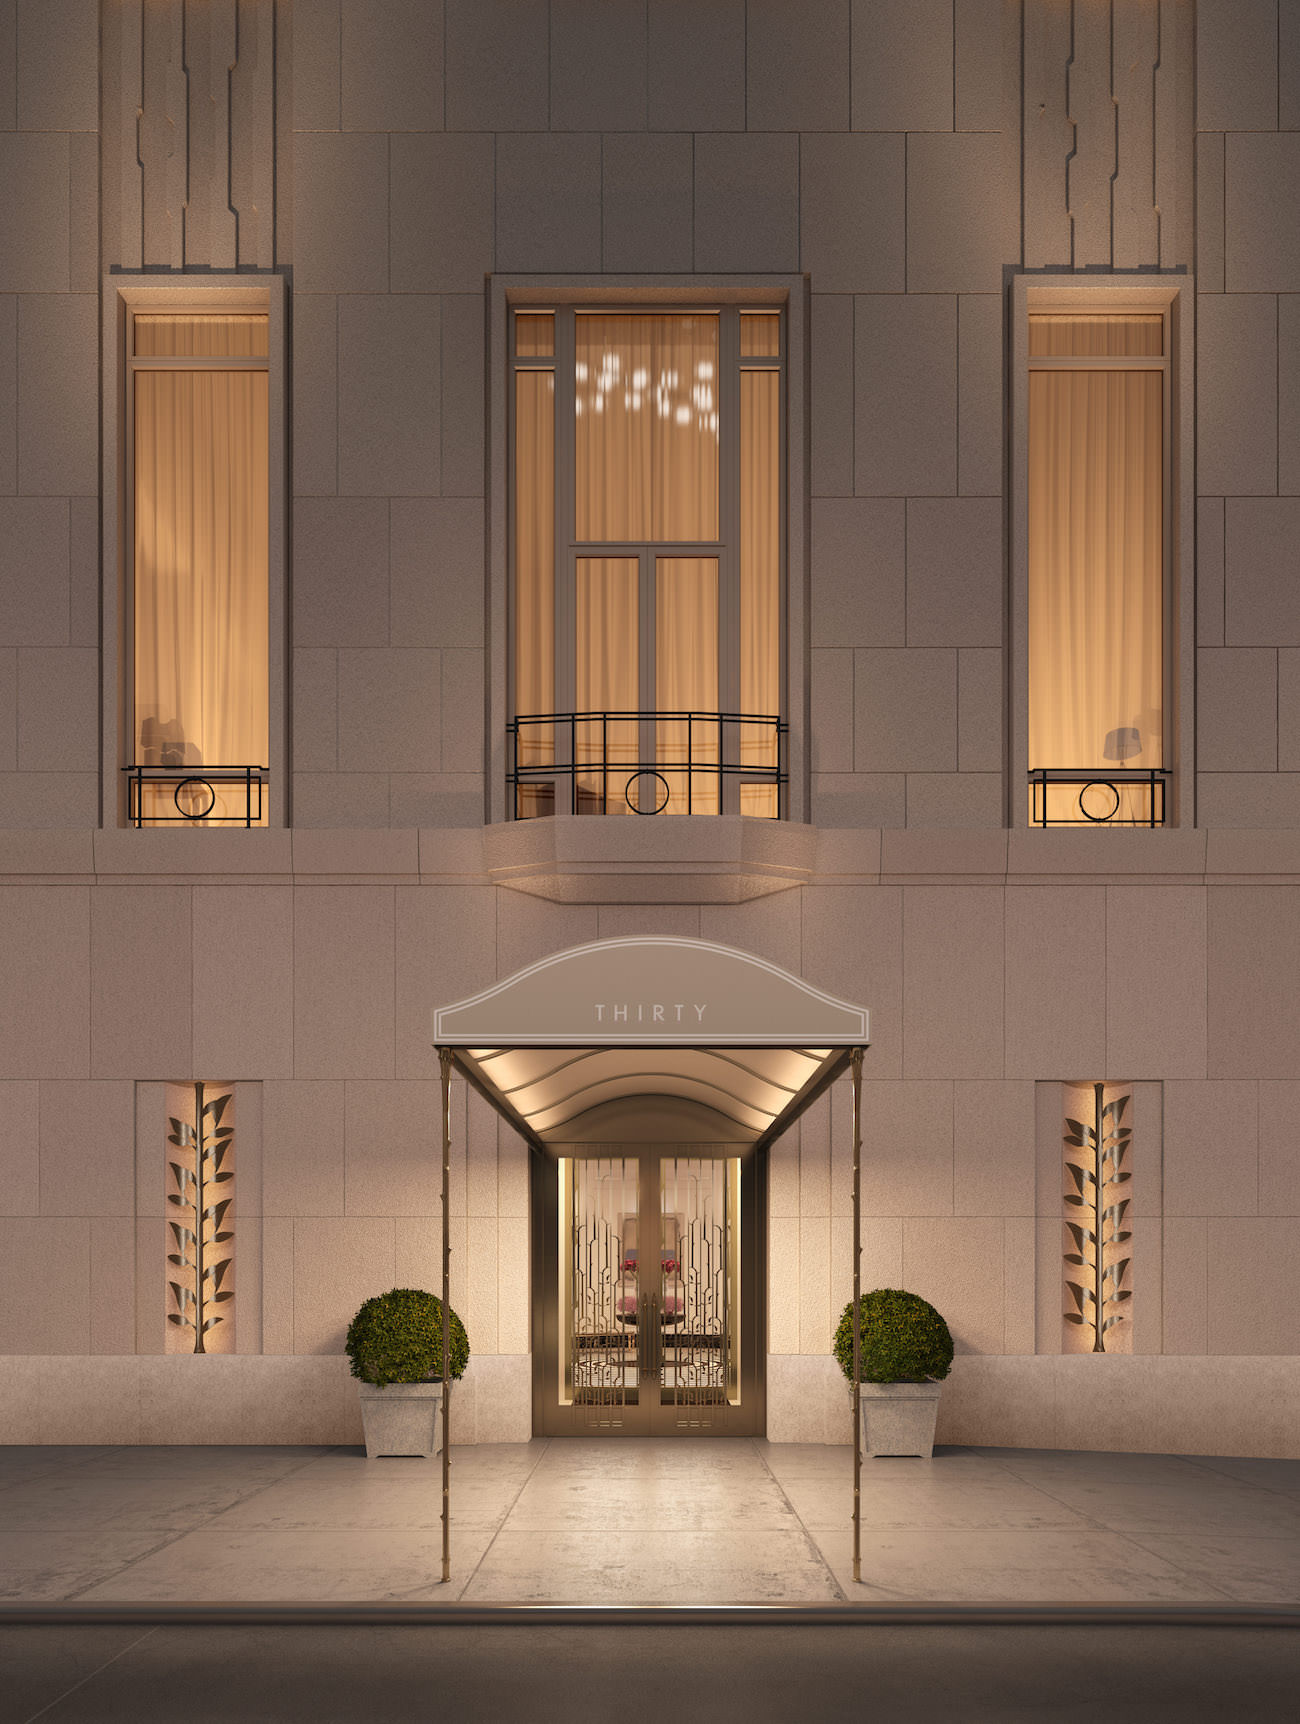 30 Park Place, New York, NY